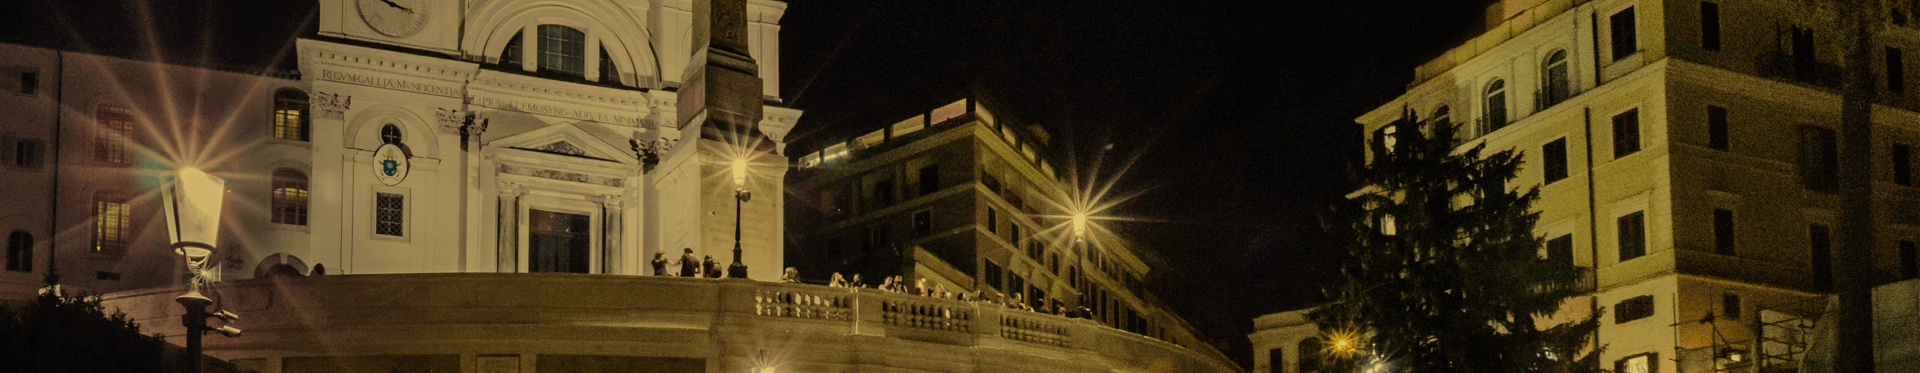 Acea's contribution to lighting up the steps at Trinità dei Monti in Rome